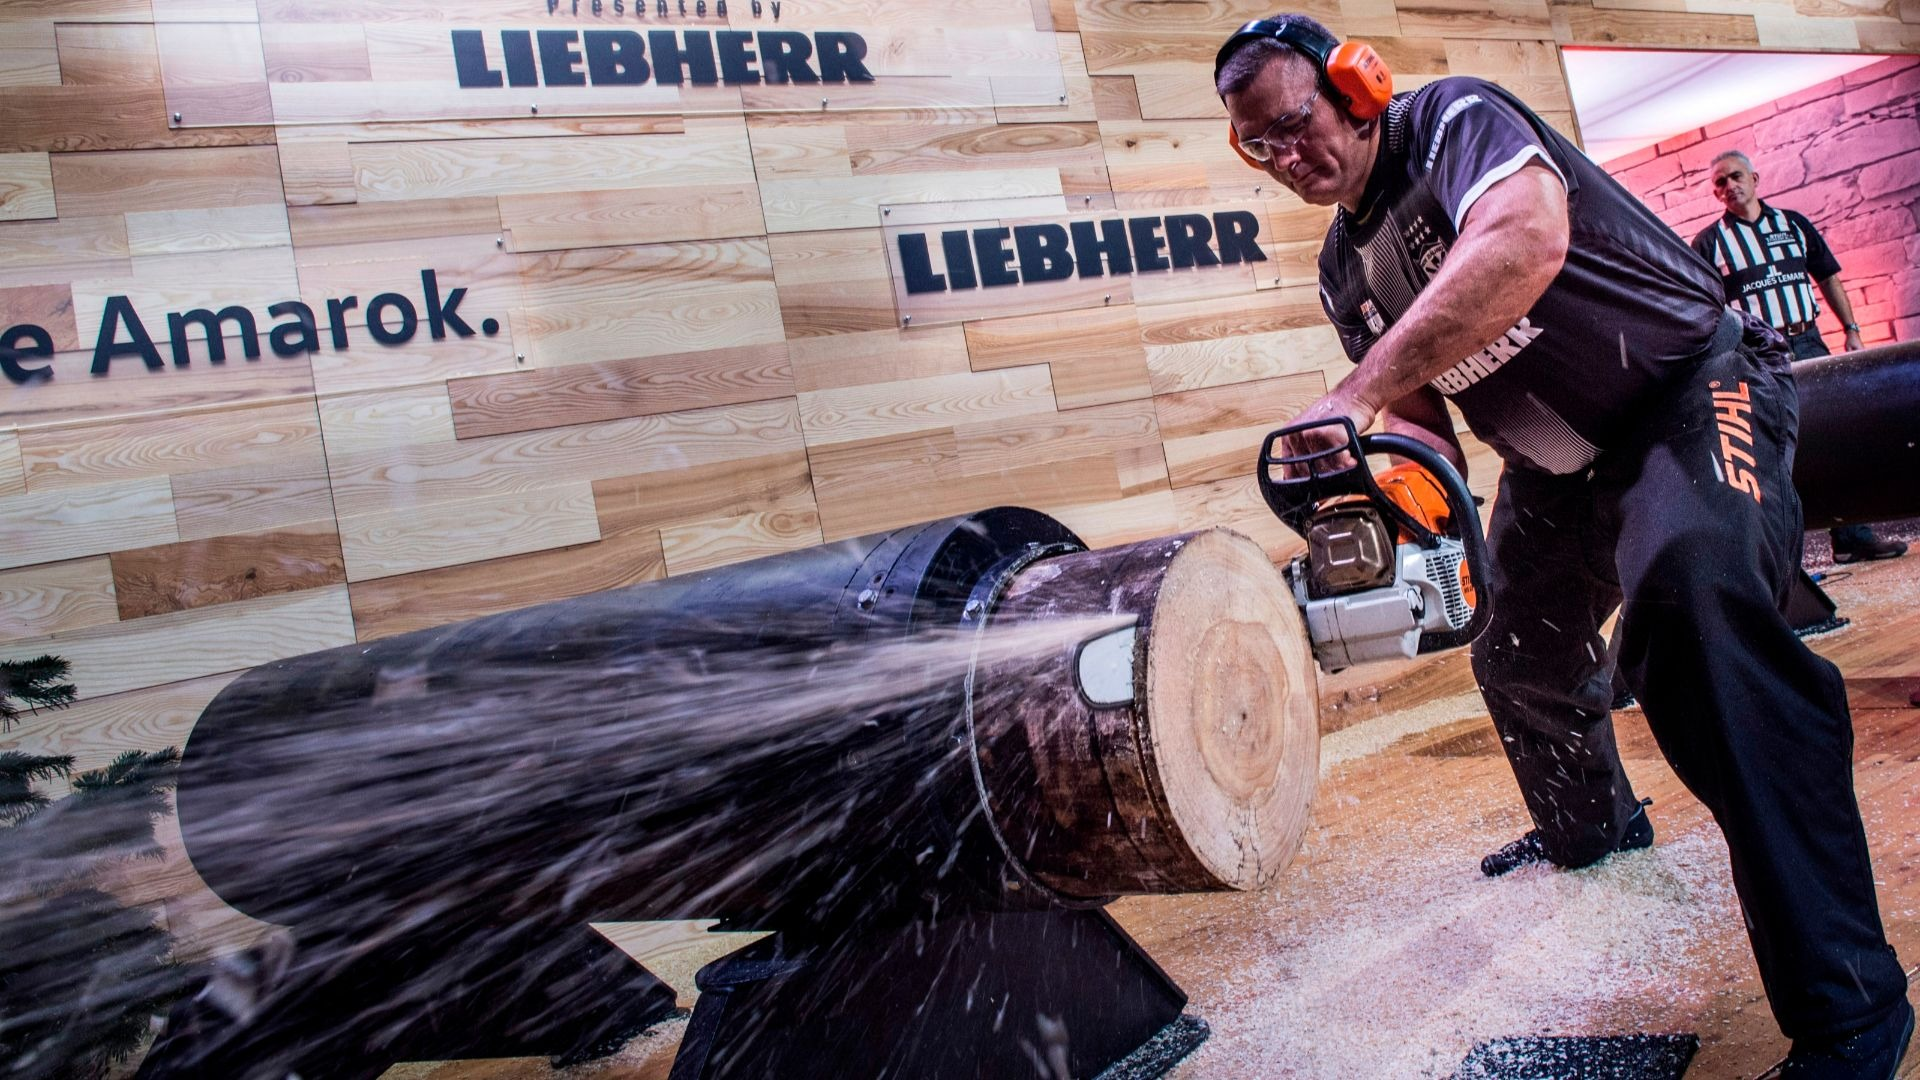 Jason Wynyard of New Zealand competes in the Stock Saw discipline.